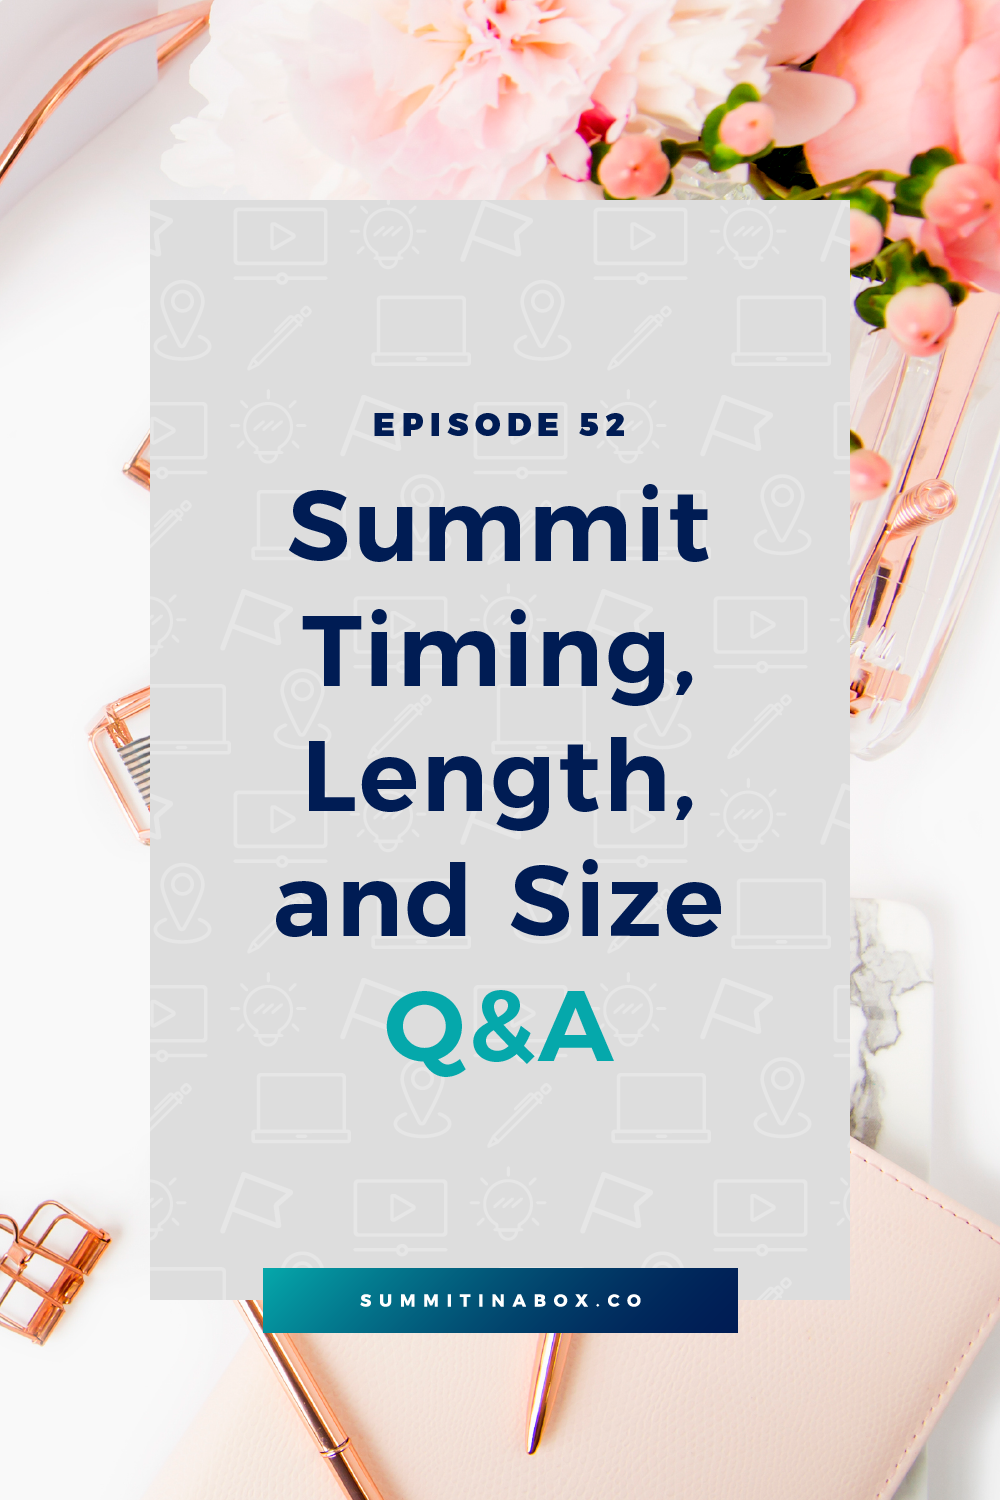 Wondering how to make the best scheduling choices for your virtual summit? Let's talk about when you should host a summit, how many speakers to have, and more!